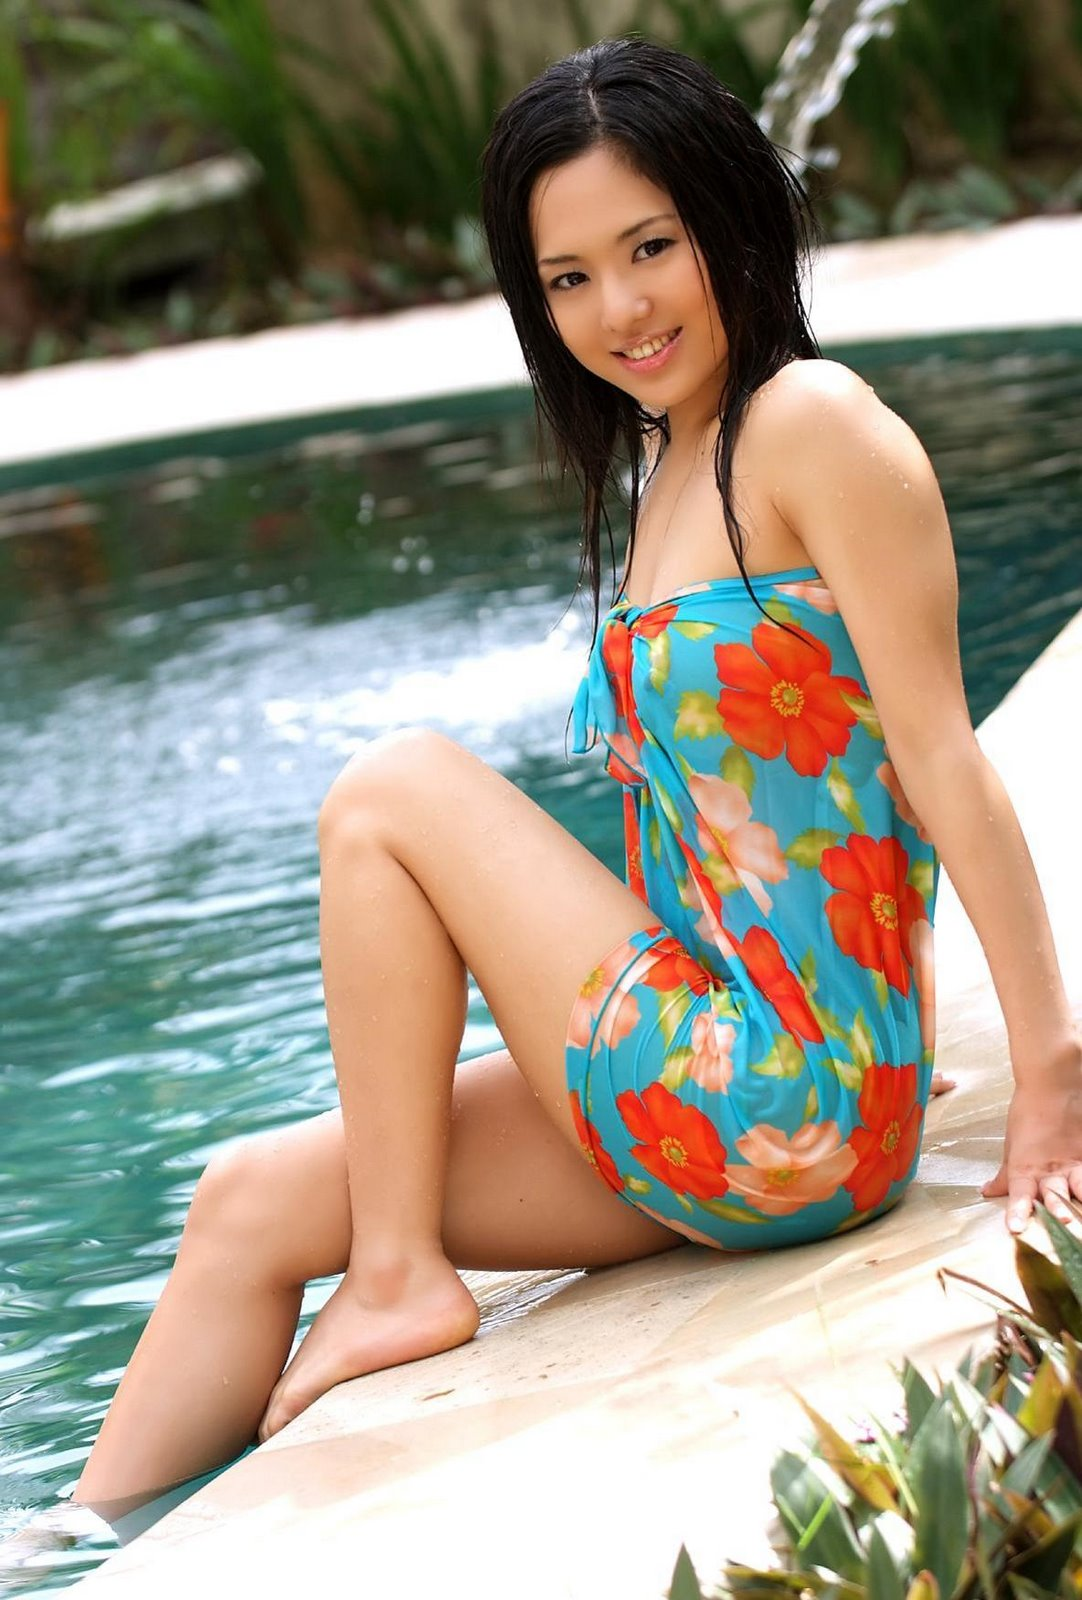 archives online sora aoi ����� free video movie and clips